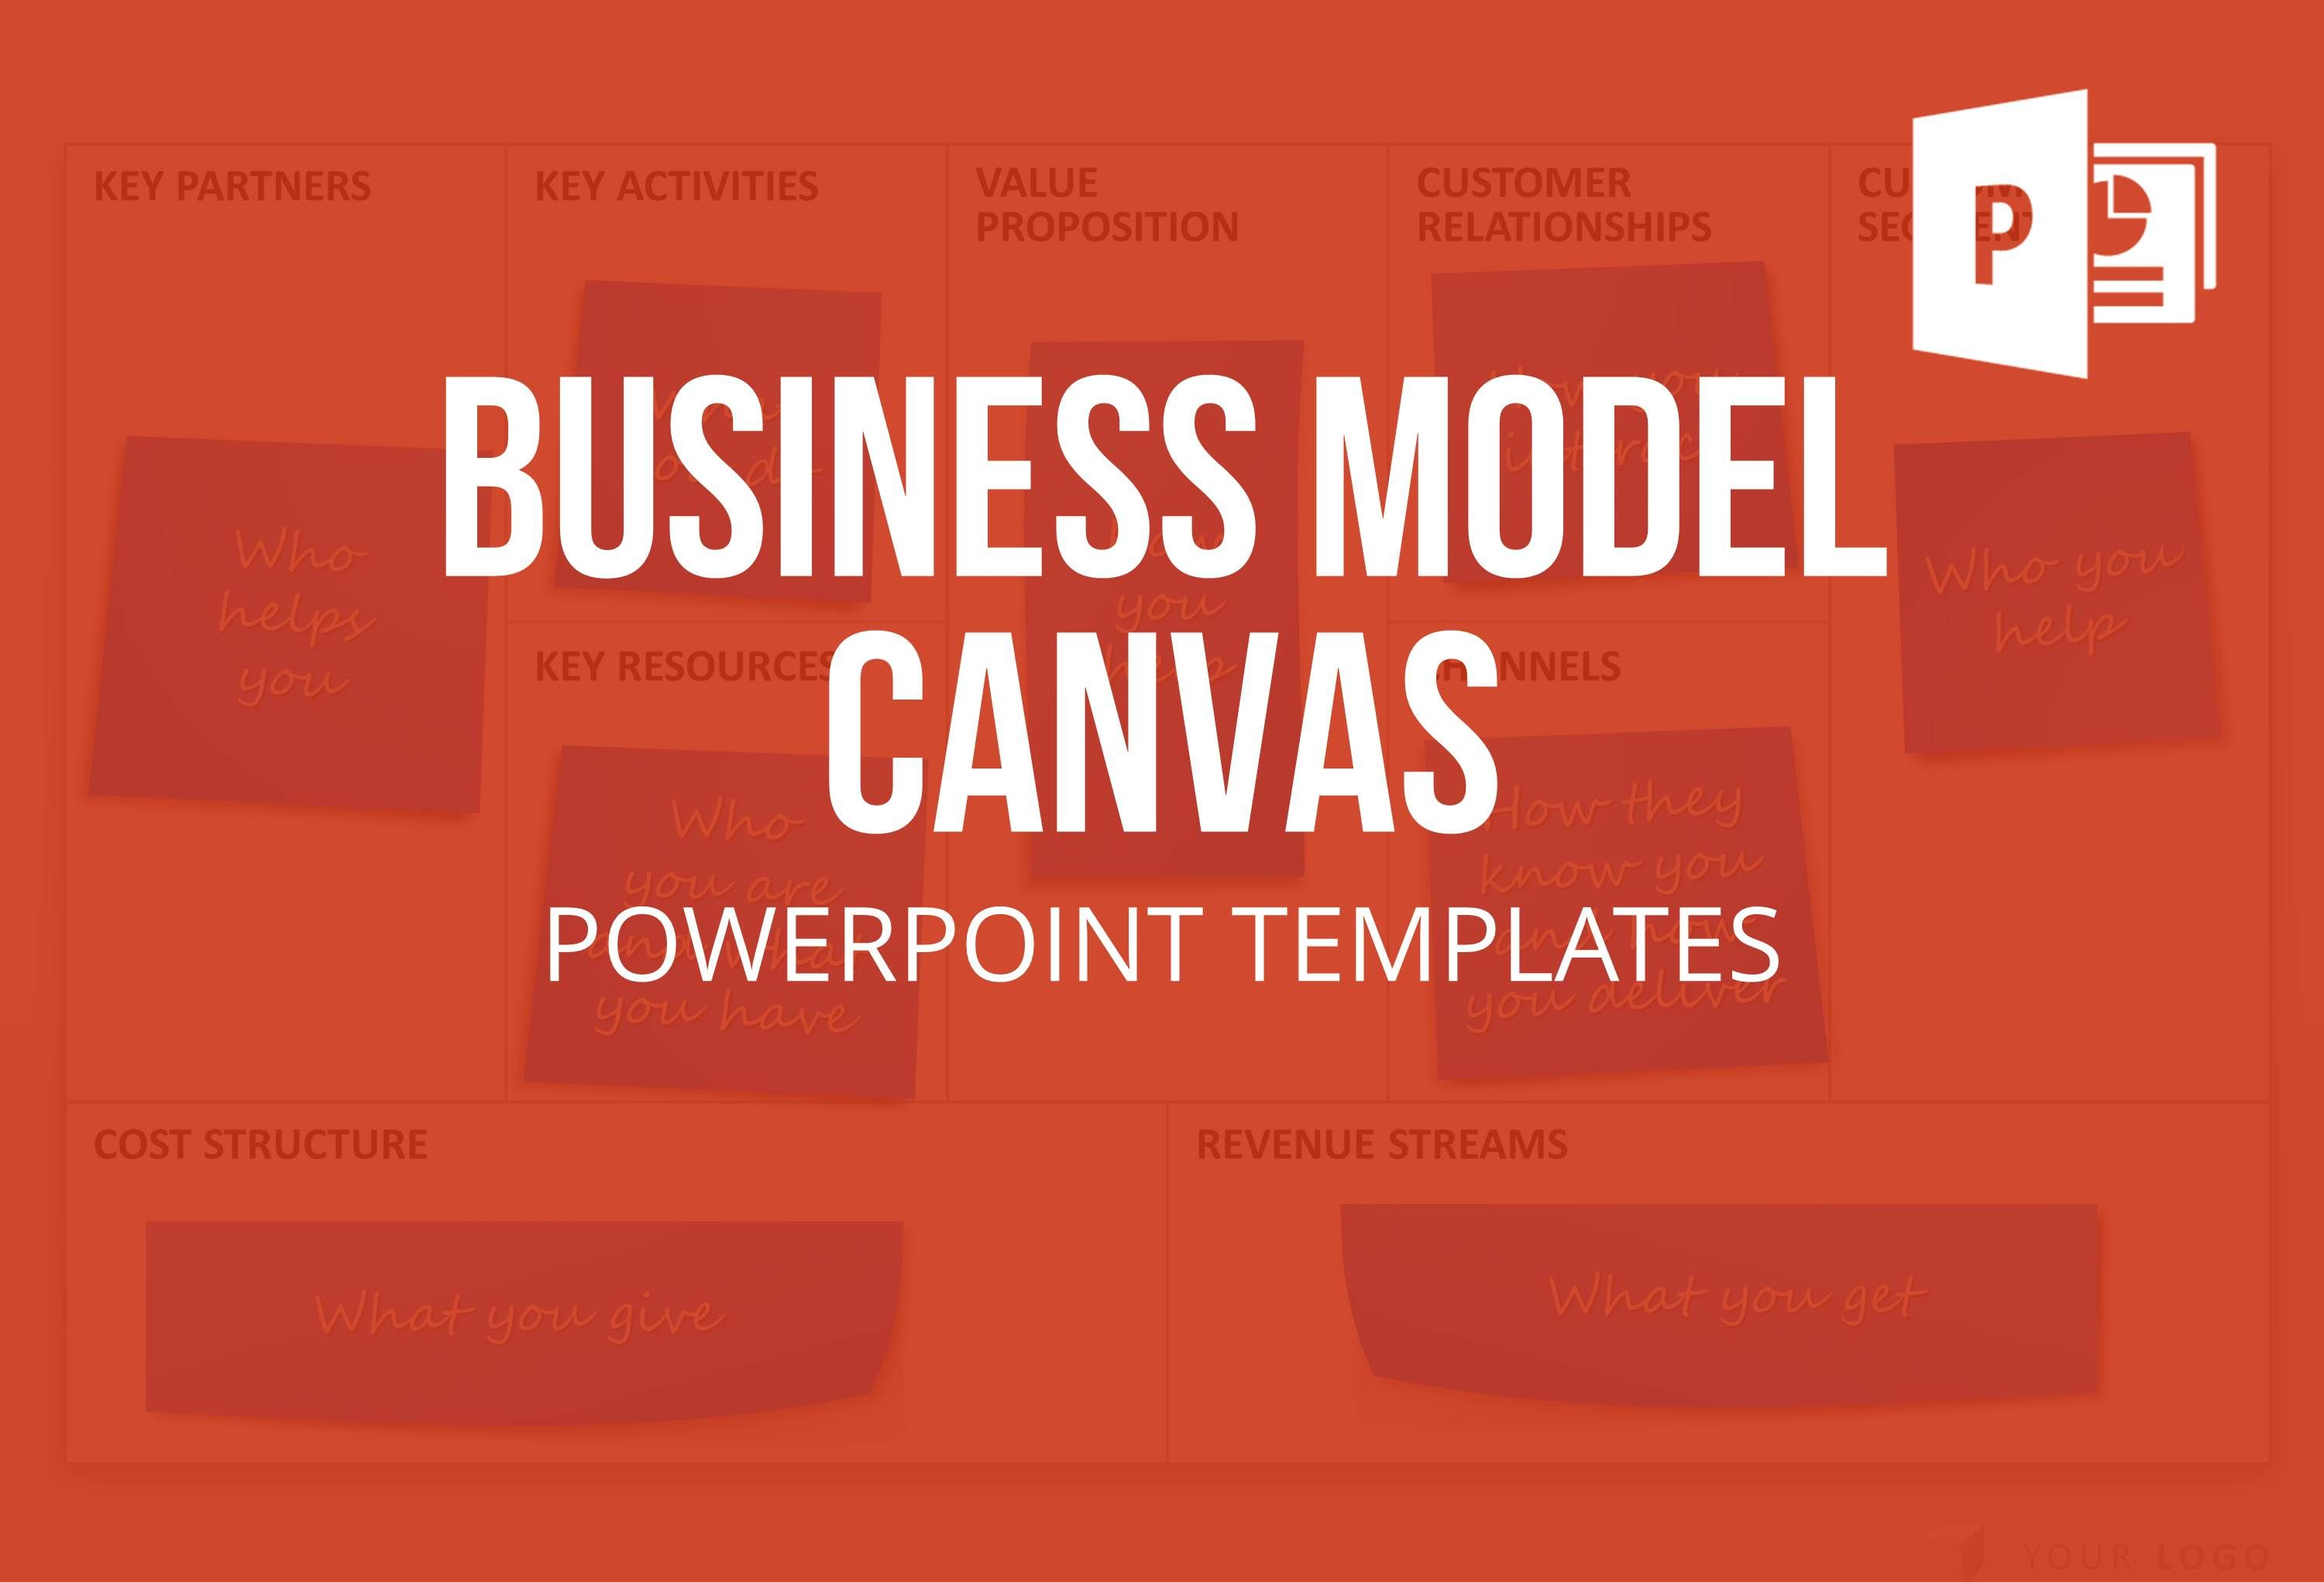 Business model canvas templates bmc for powerpoint for the business model canvas templates bmc for powerpoint for the planning and visualization of the strategic development of new and existing business models cheaphphosting Choice Image